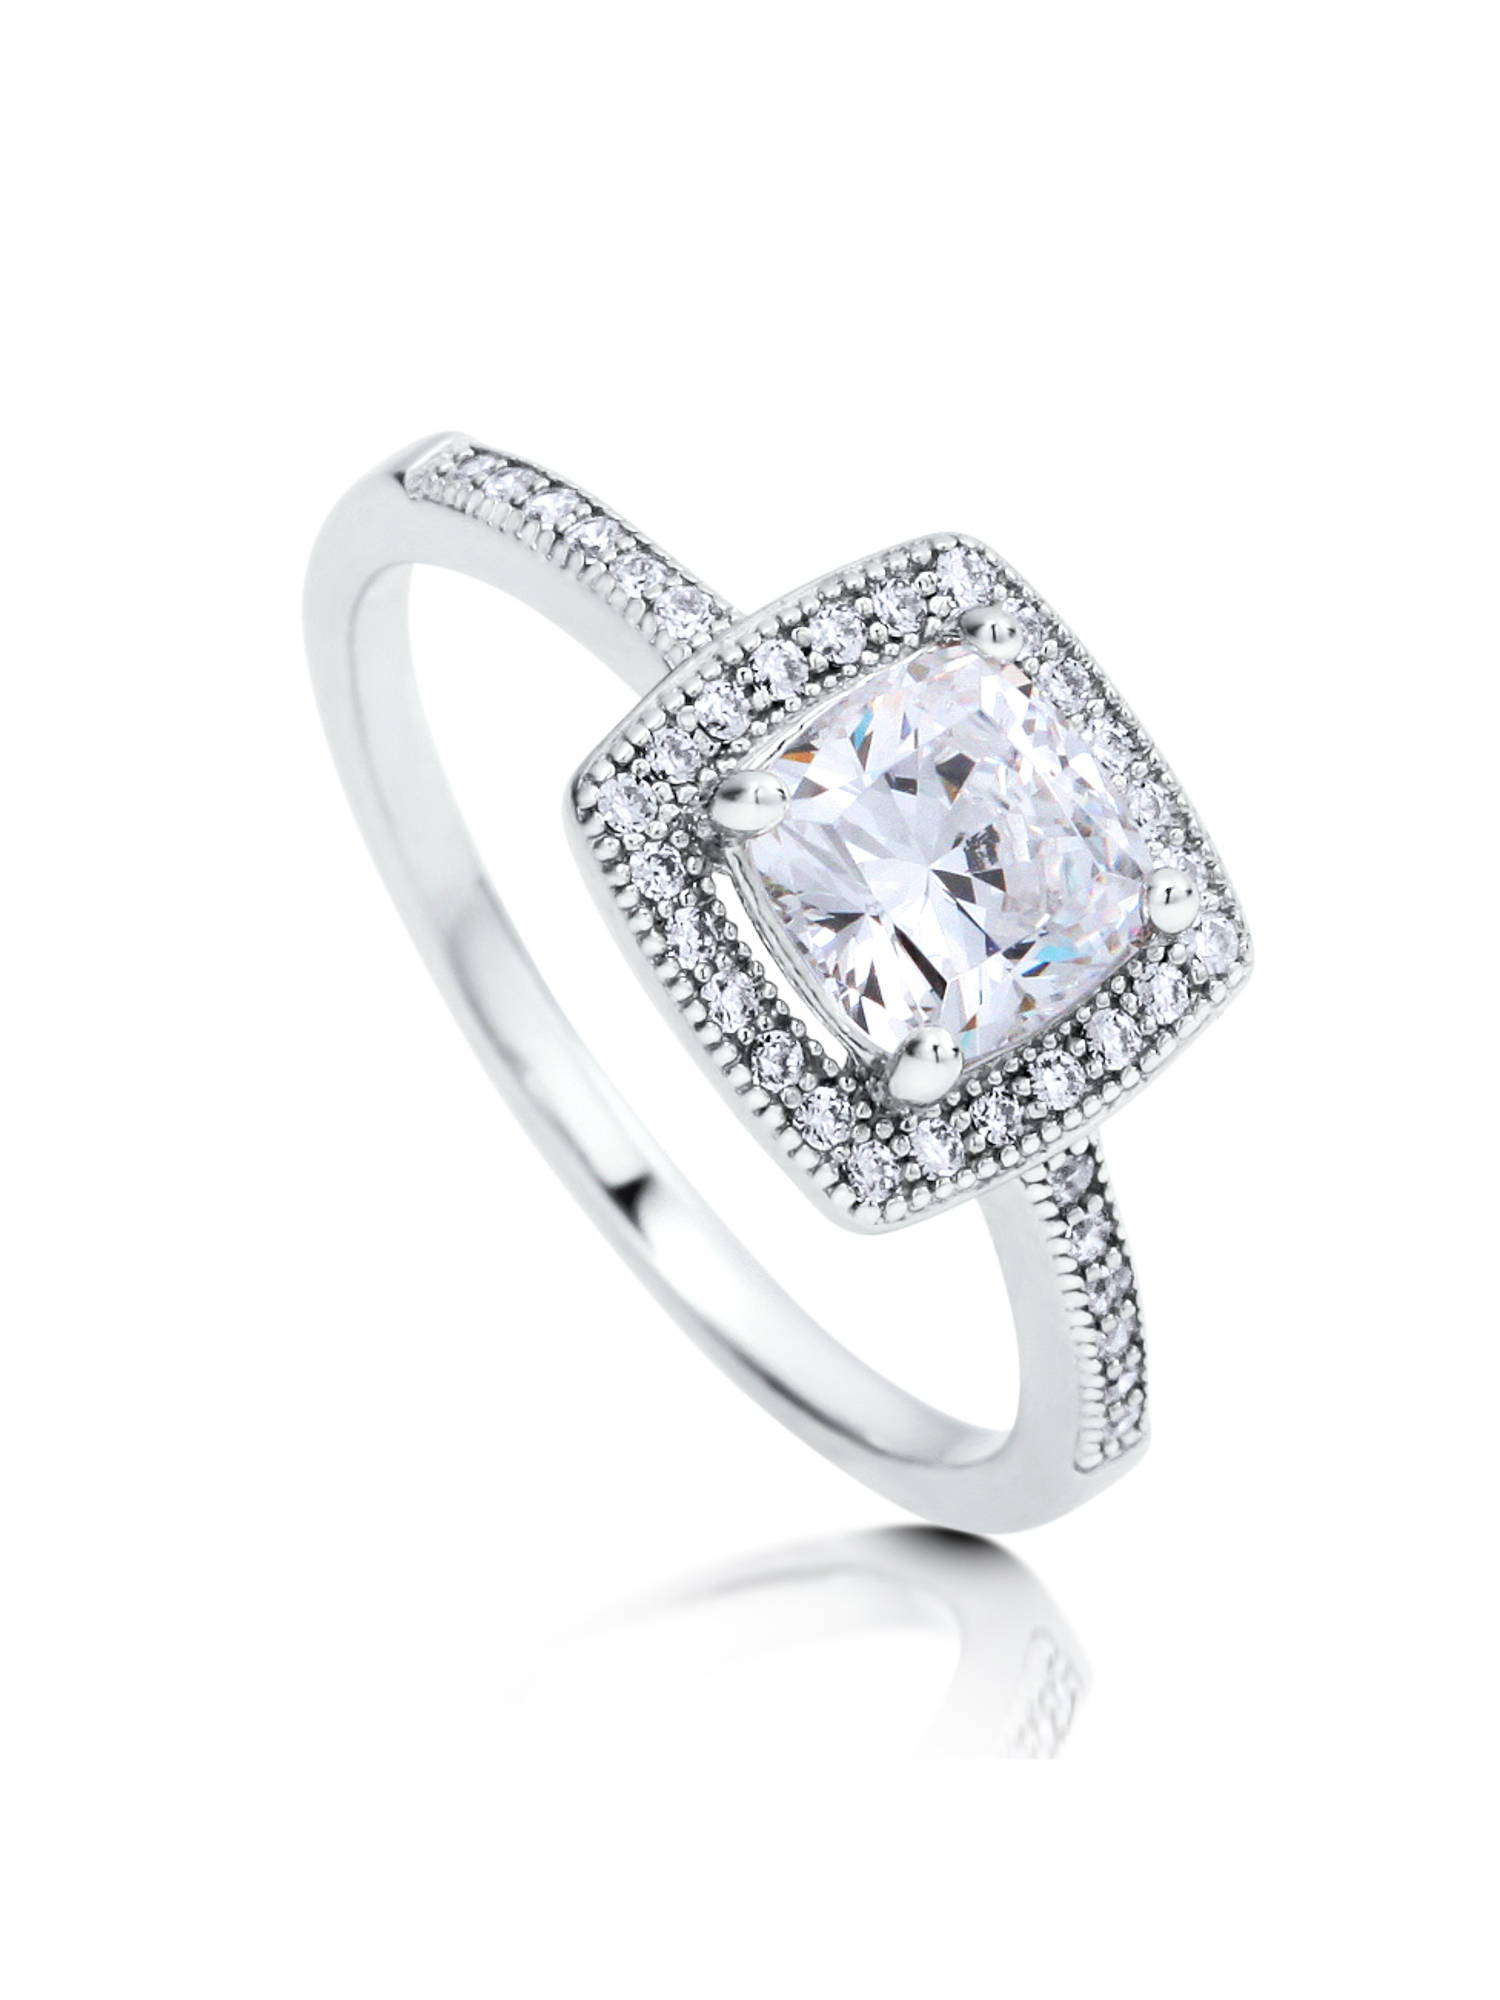 BERRICLE Rhodium Plated Sterling Silver Cubic Zirconia CZ Halo Promise Engagement Ring Size 10.5